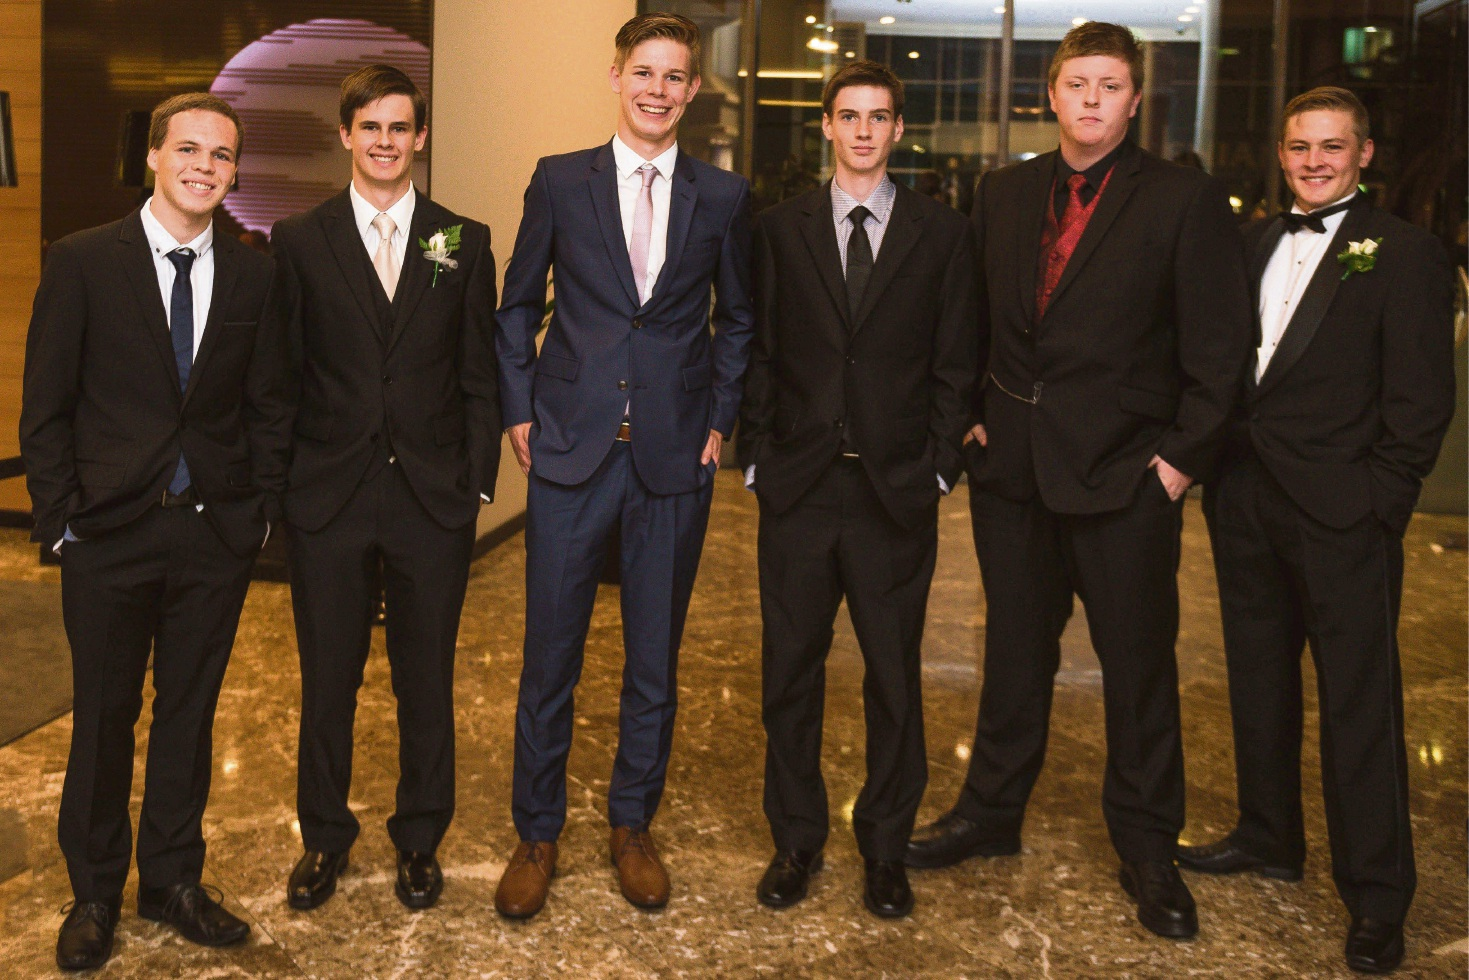 Jacob Mellor, Jayden Hood, Kennedy Hile, Michael Penno, Nathaniel Barry and Owen Raynor. Pictures: Event Photography